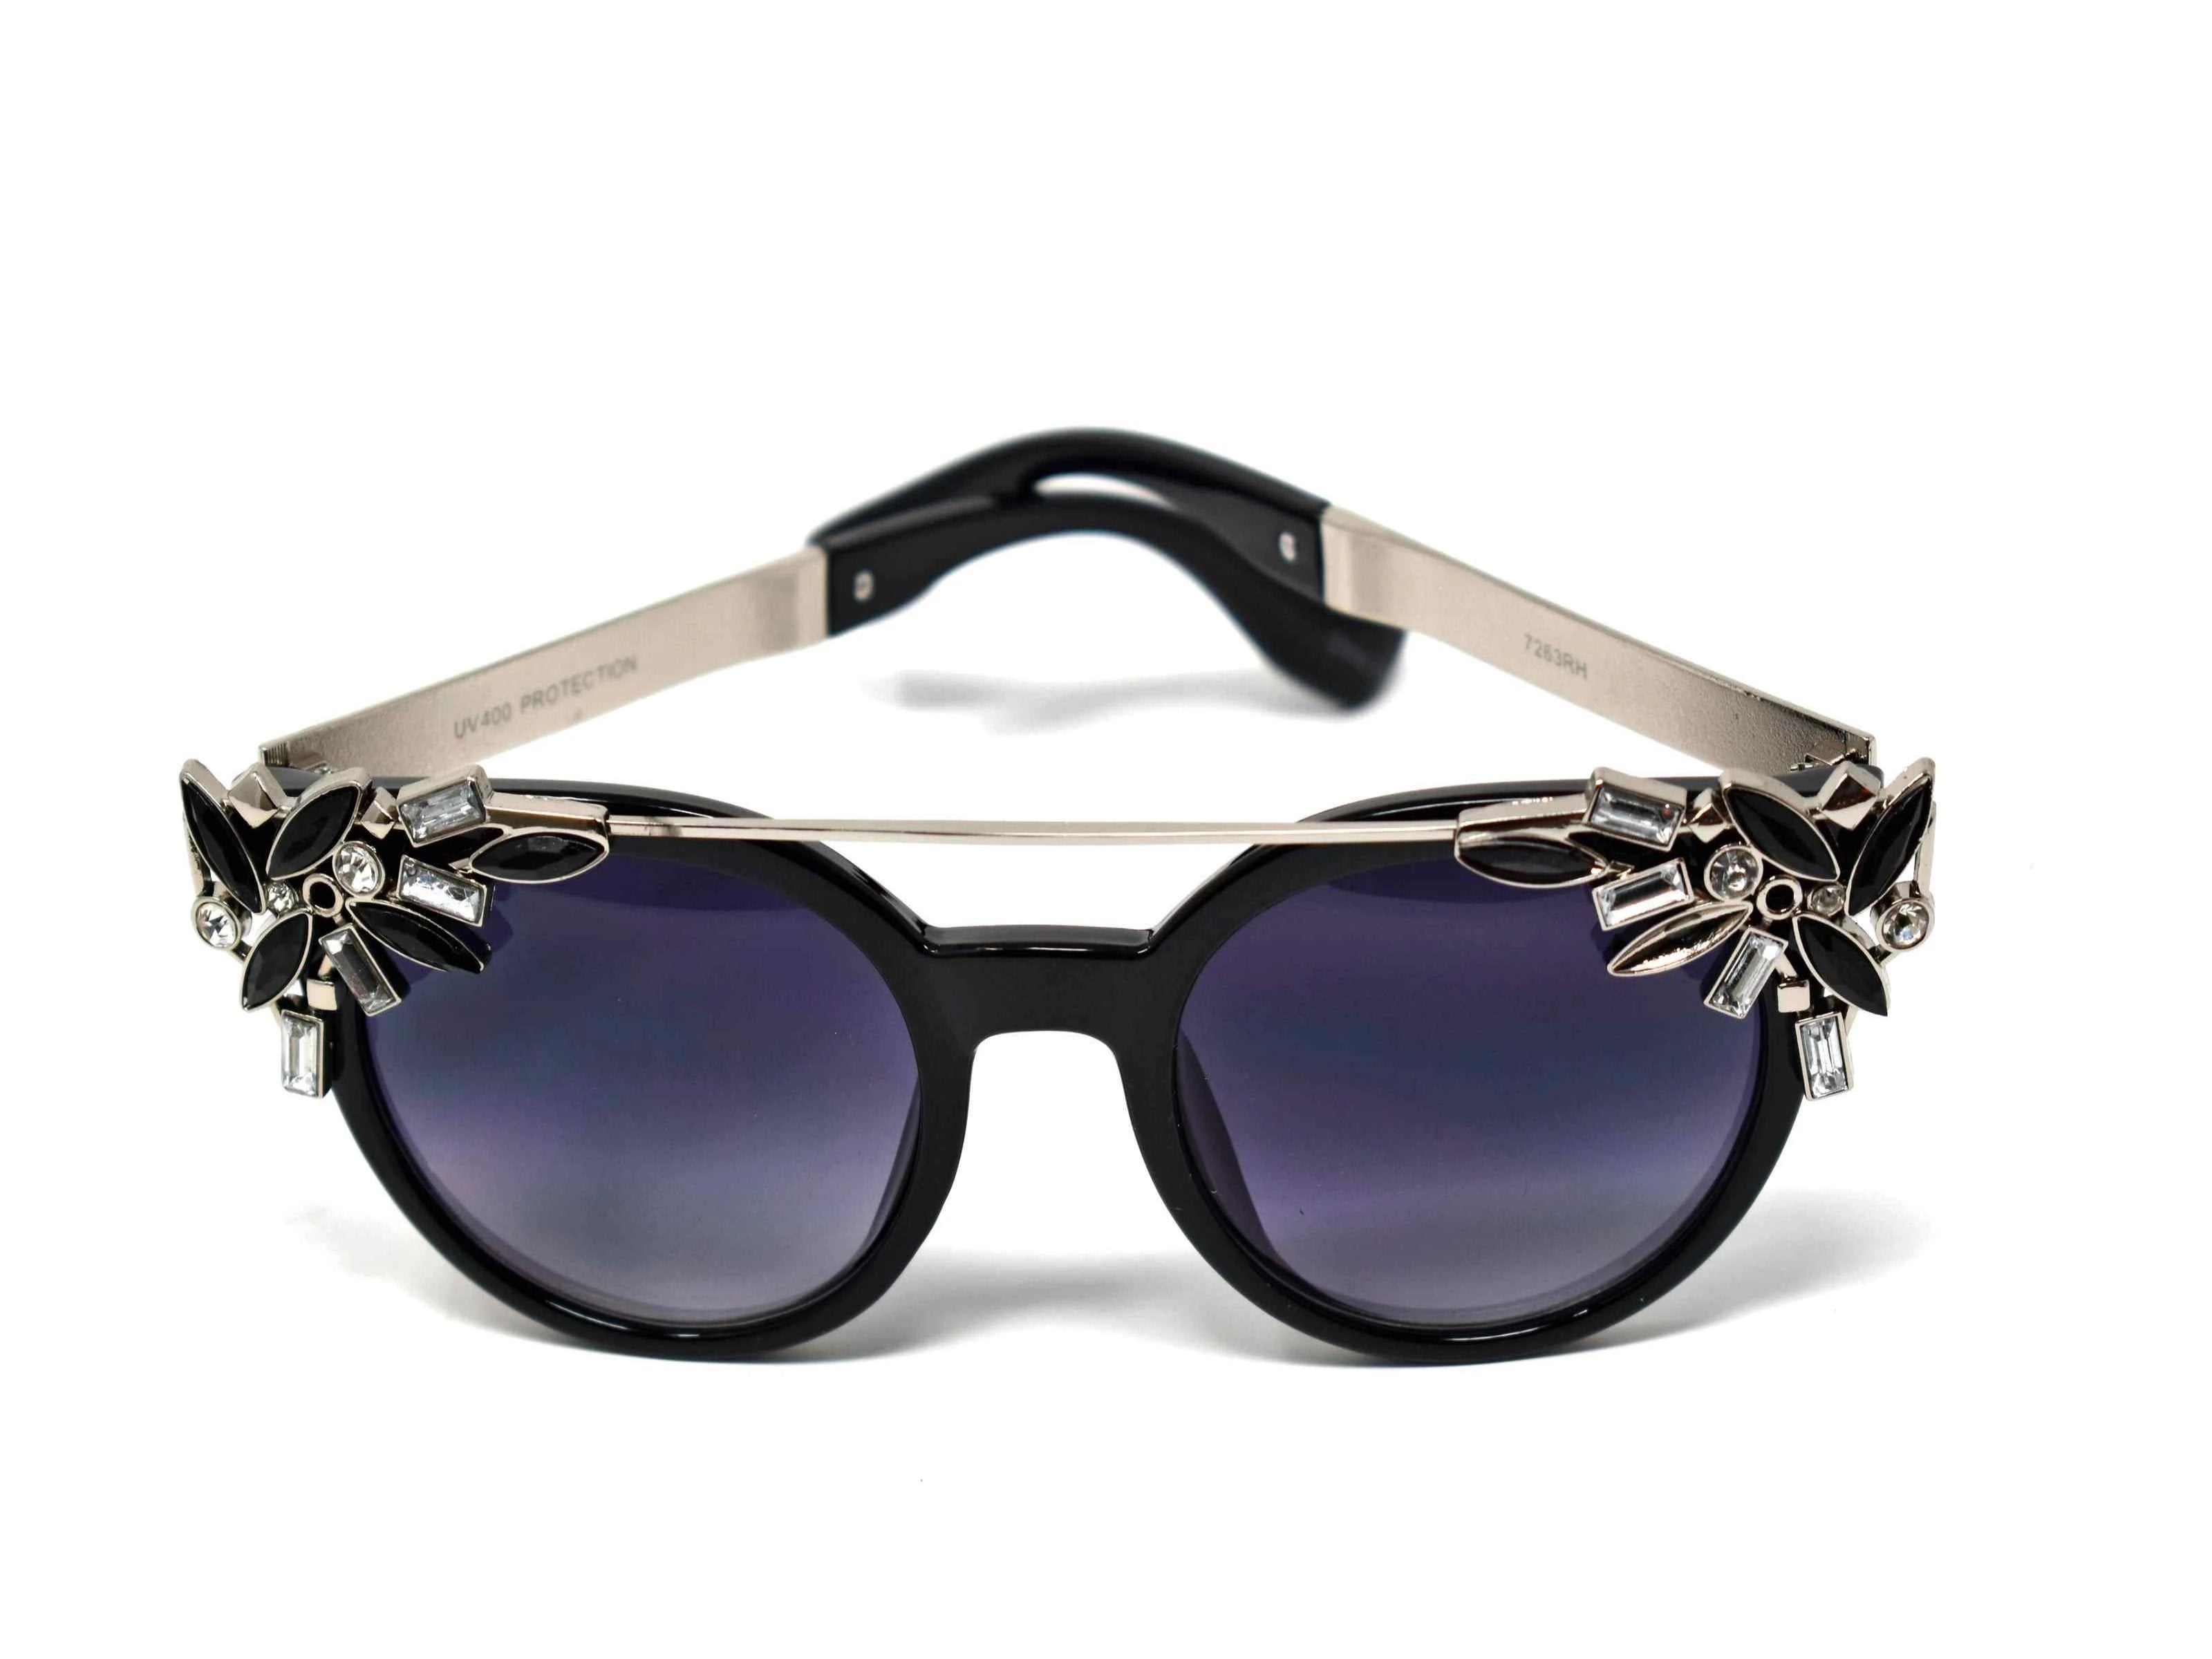 Trend setter and attention getter is what they will call you in these Pansy black sunglasses with a sleek silver trim adorned in black and clear gems, in a pantos style frame.